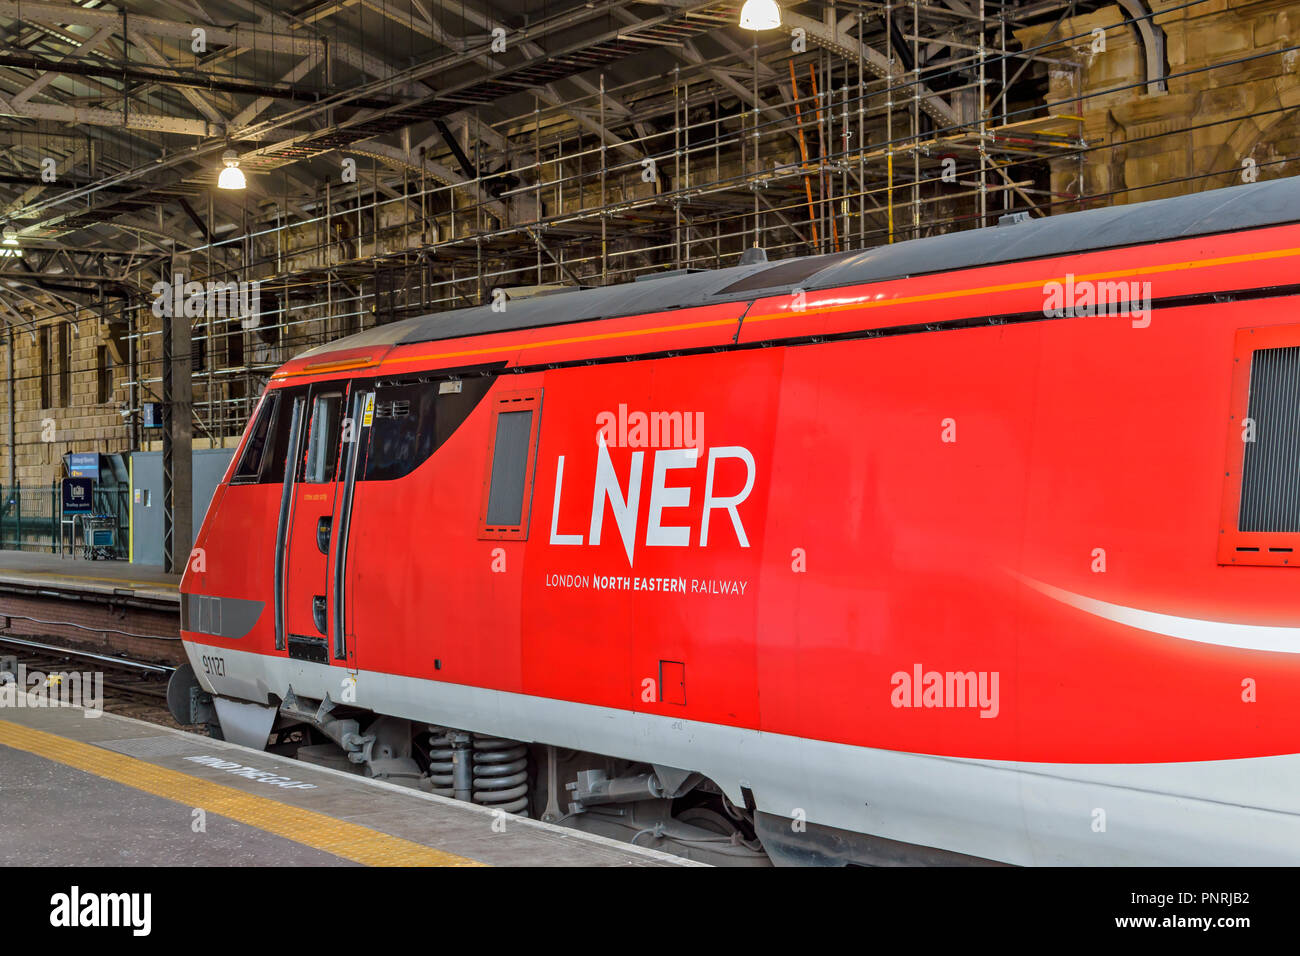 EDINBURGH SCOTLAND WAVERLEY STATION RED AND WHITE LNER TRAIN - Stock Image